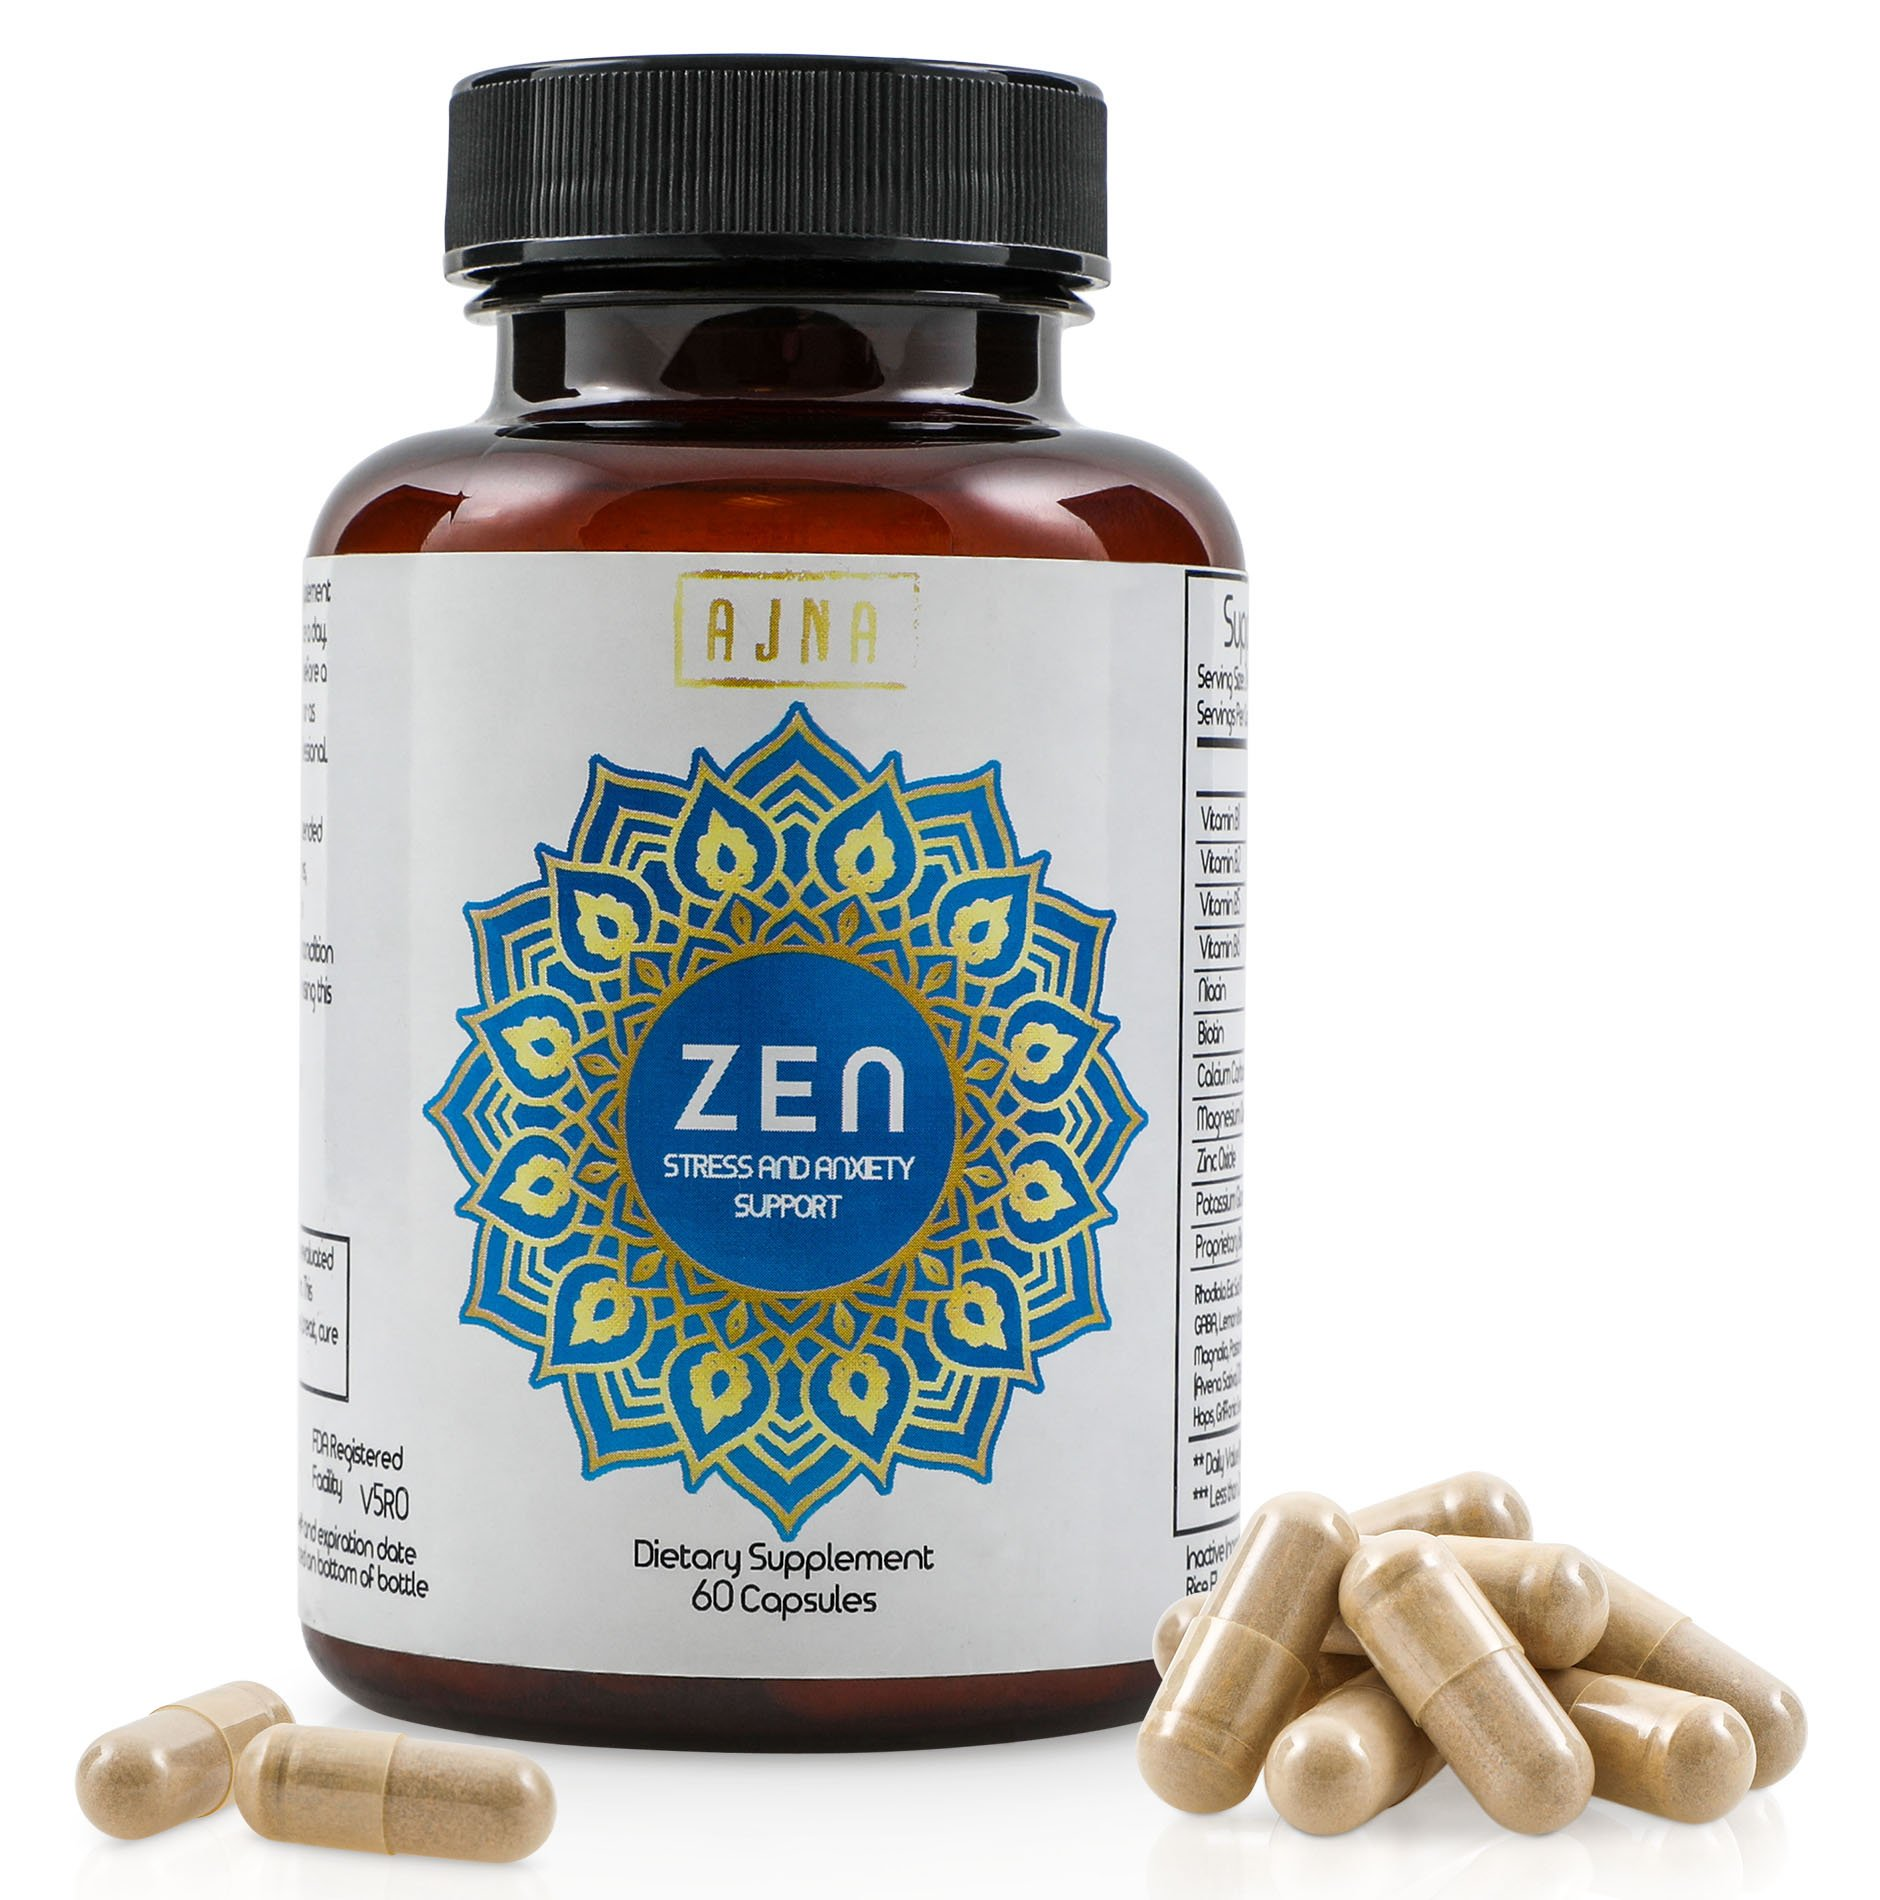 Natural Anti-Anxiety, Anti-Stress Supplements   Mood Boost, Stress Relief Supplement   Vegan, Non-GMO Pills for Calming & Relaxation   Capsules Made with Anxiety Reducing Chamomile, L-Theanine, 5-HTP